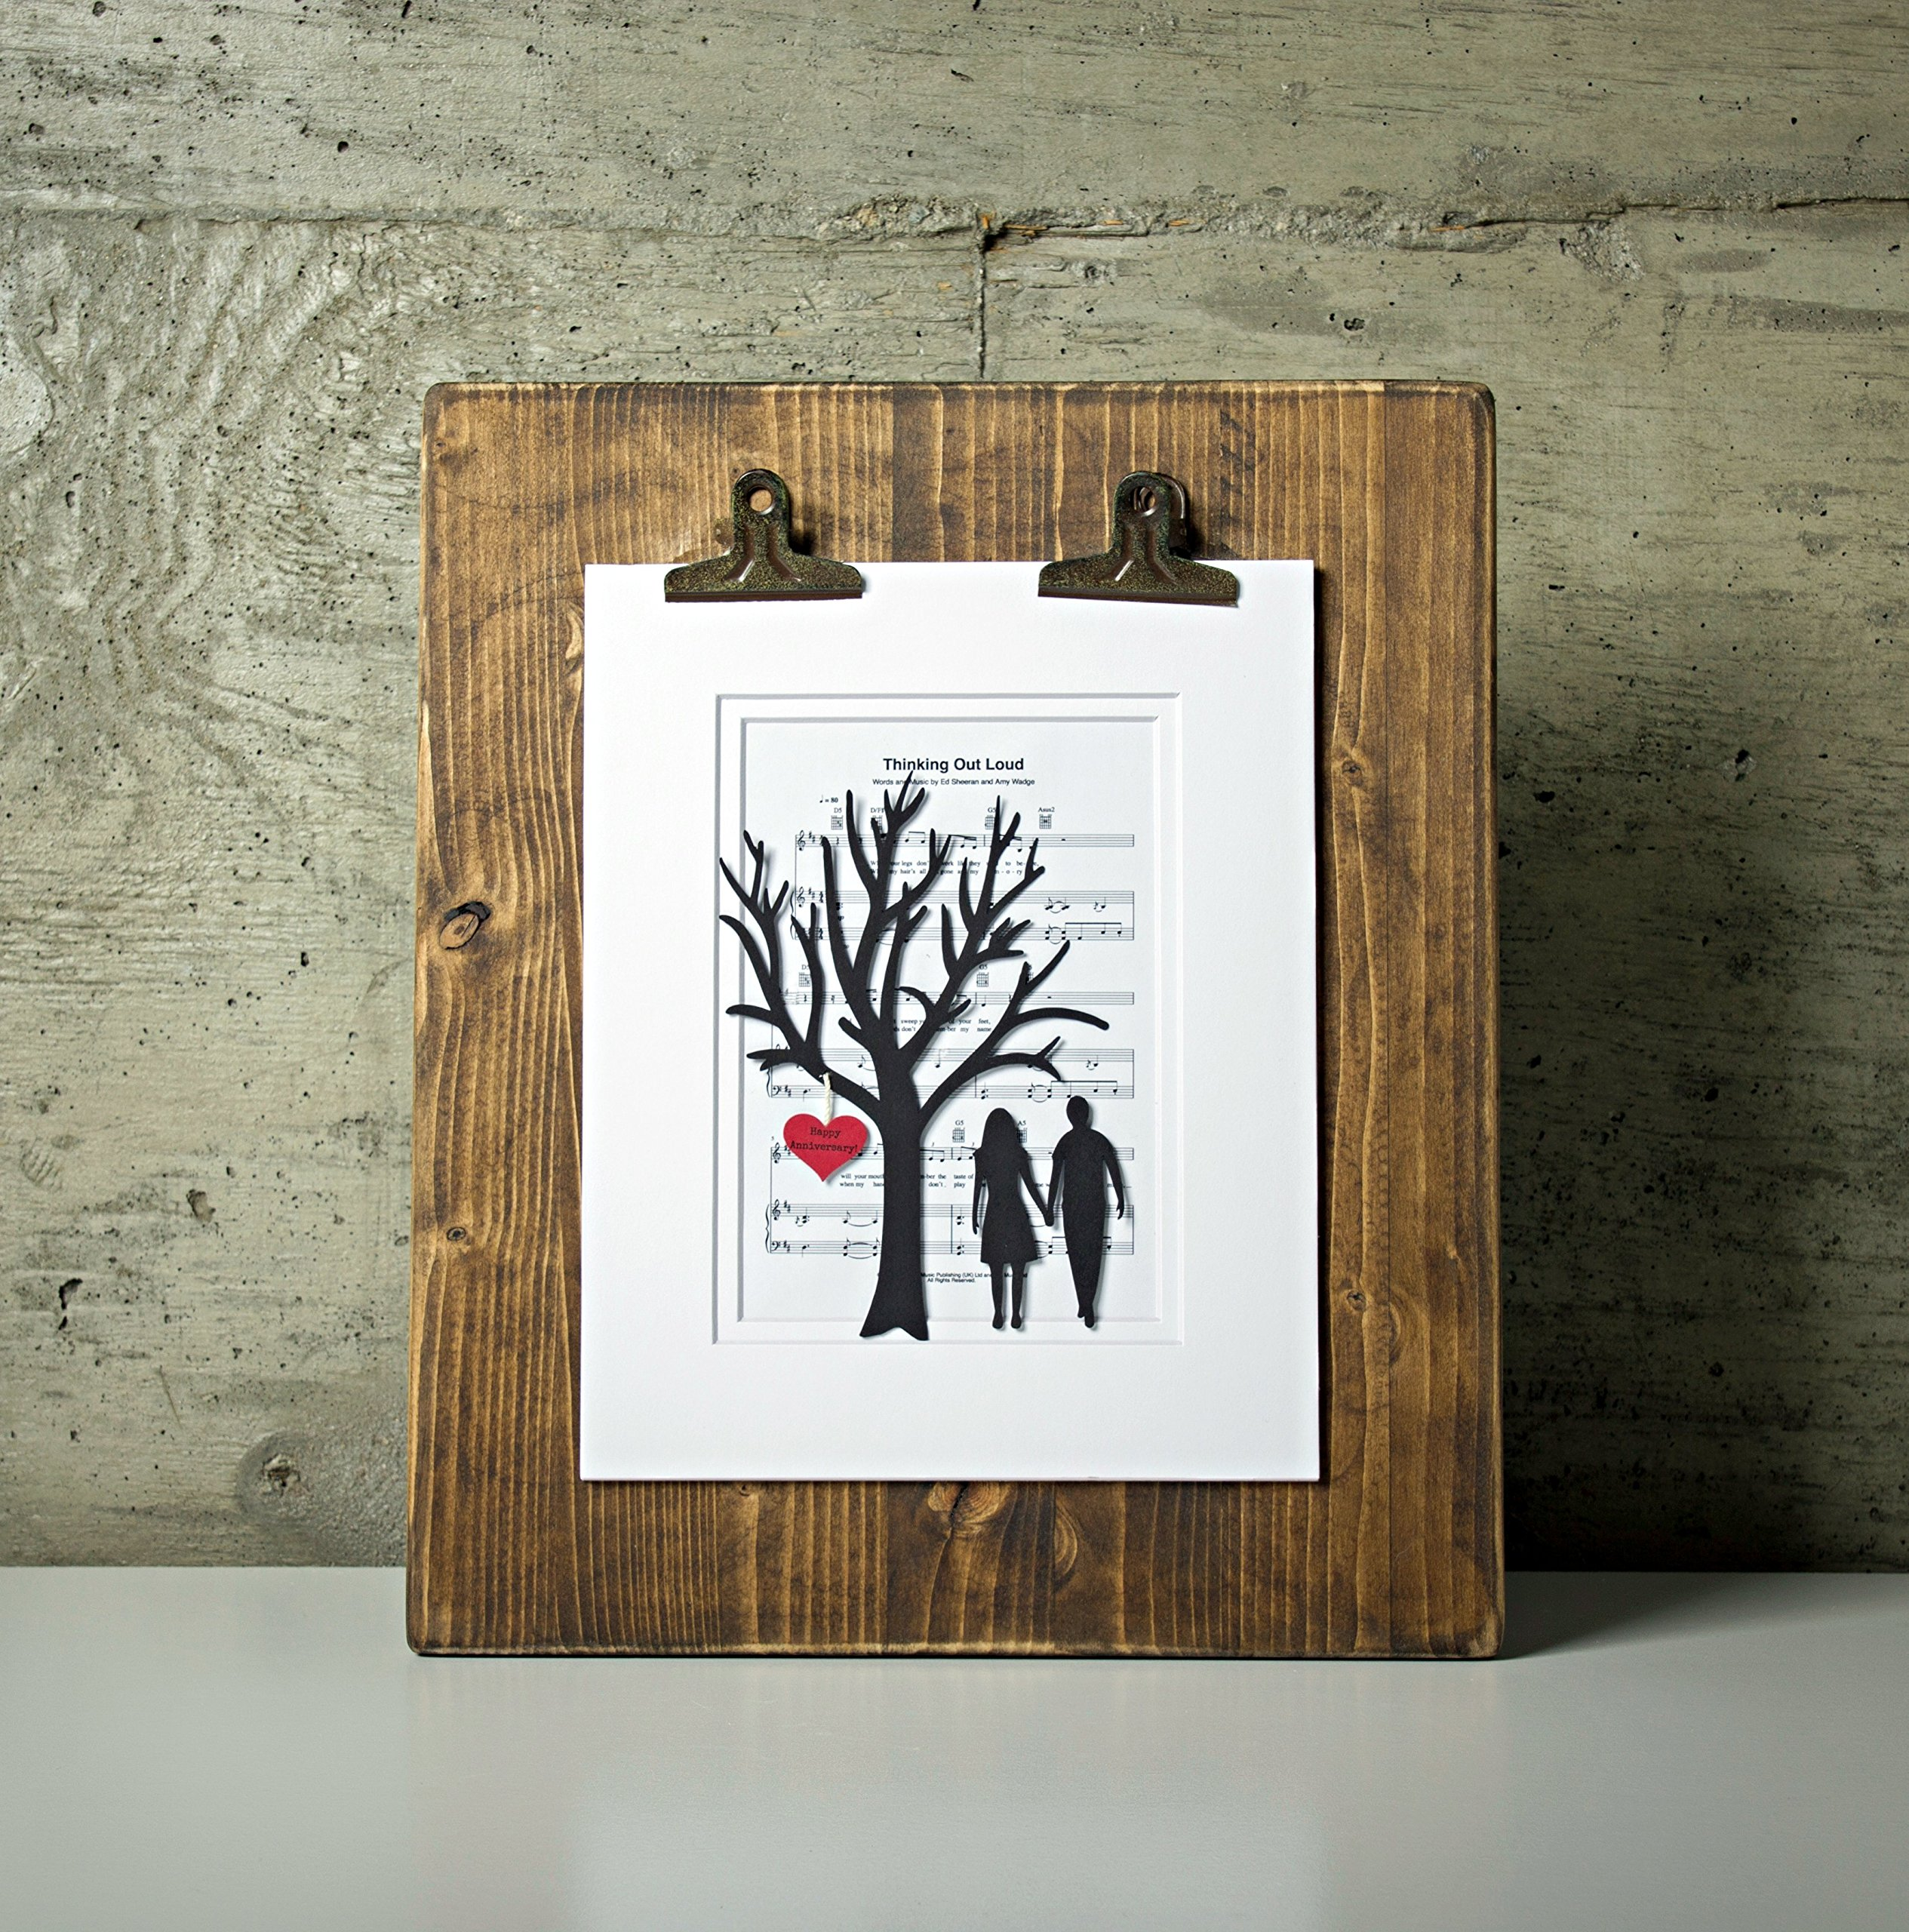 ''Thinking Out Loud'' First Anniversary or Wedding Gift - 3D Paper Tree & Hearts on Sheet Music - 1st Anniversary Gift- Paper Anniversary - First Dance Song - Last Minute Anniversary Gifts